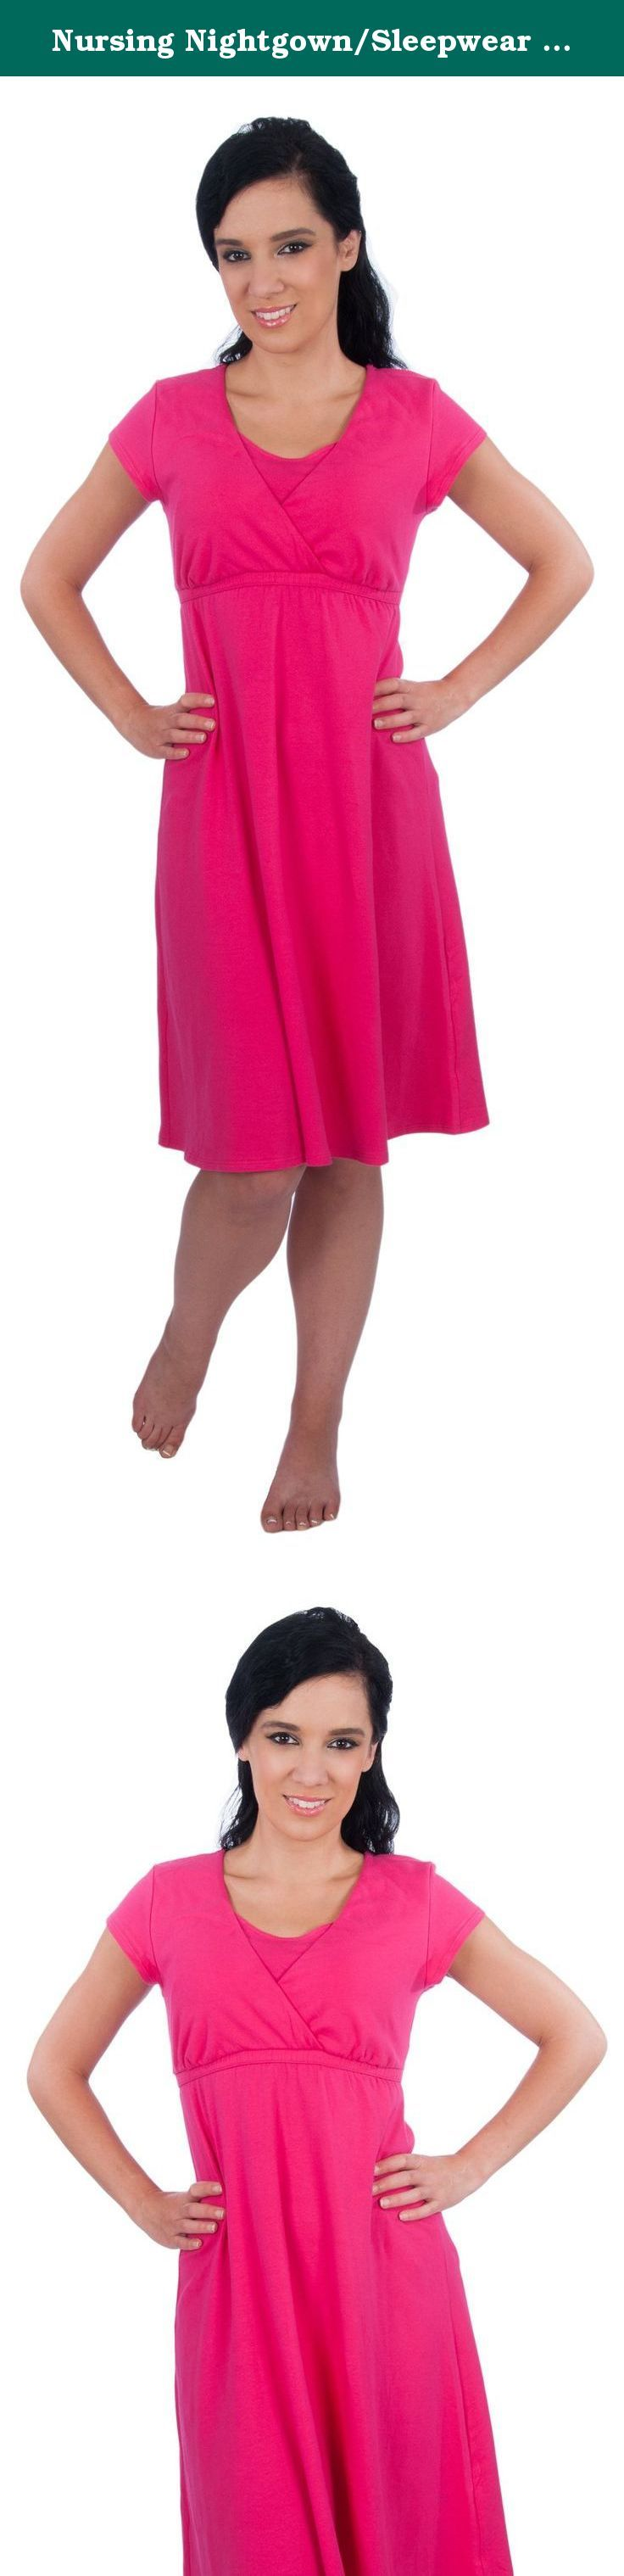 Nursing Nightgown/Sleepwear Dress - Made in USA (Small/Pink). Sizing Small (4-6) Medium (8-10) Large (12-14) This My Bella Mama Gown was originally created as a nursing nightgown, but it is so flattering and versatile that you can wear it to lounge around the house or even go out in public. Pull aside panels offer discreet easy nursing access. Most maternity and nursing tops can be too revealing, this gown is designed to offer the right amount of coverage if you don't like to show too…